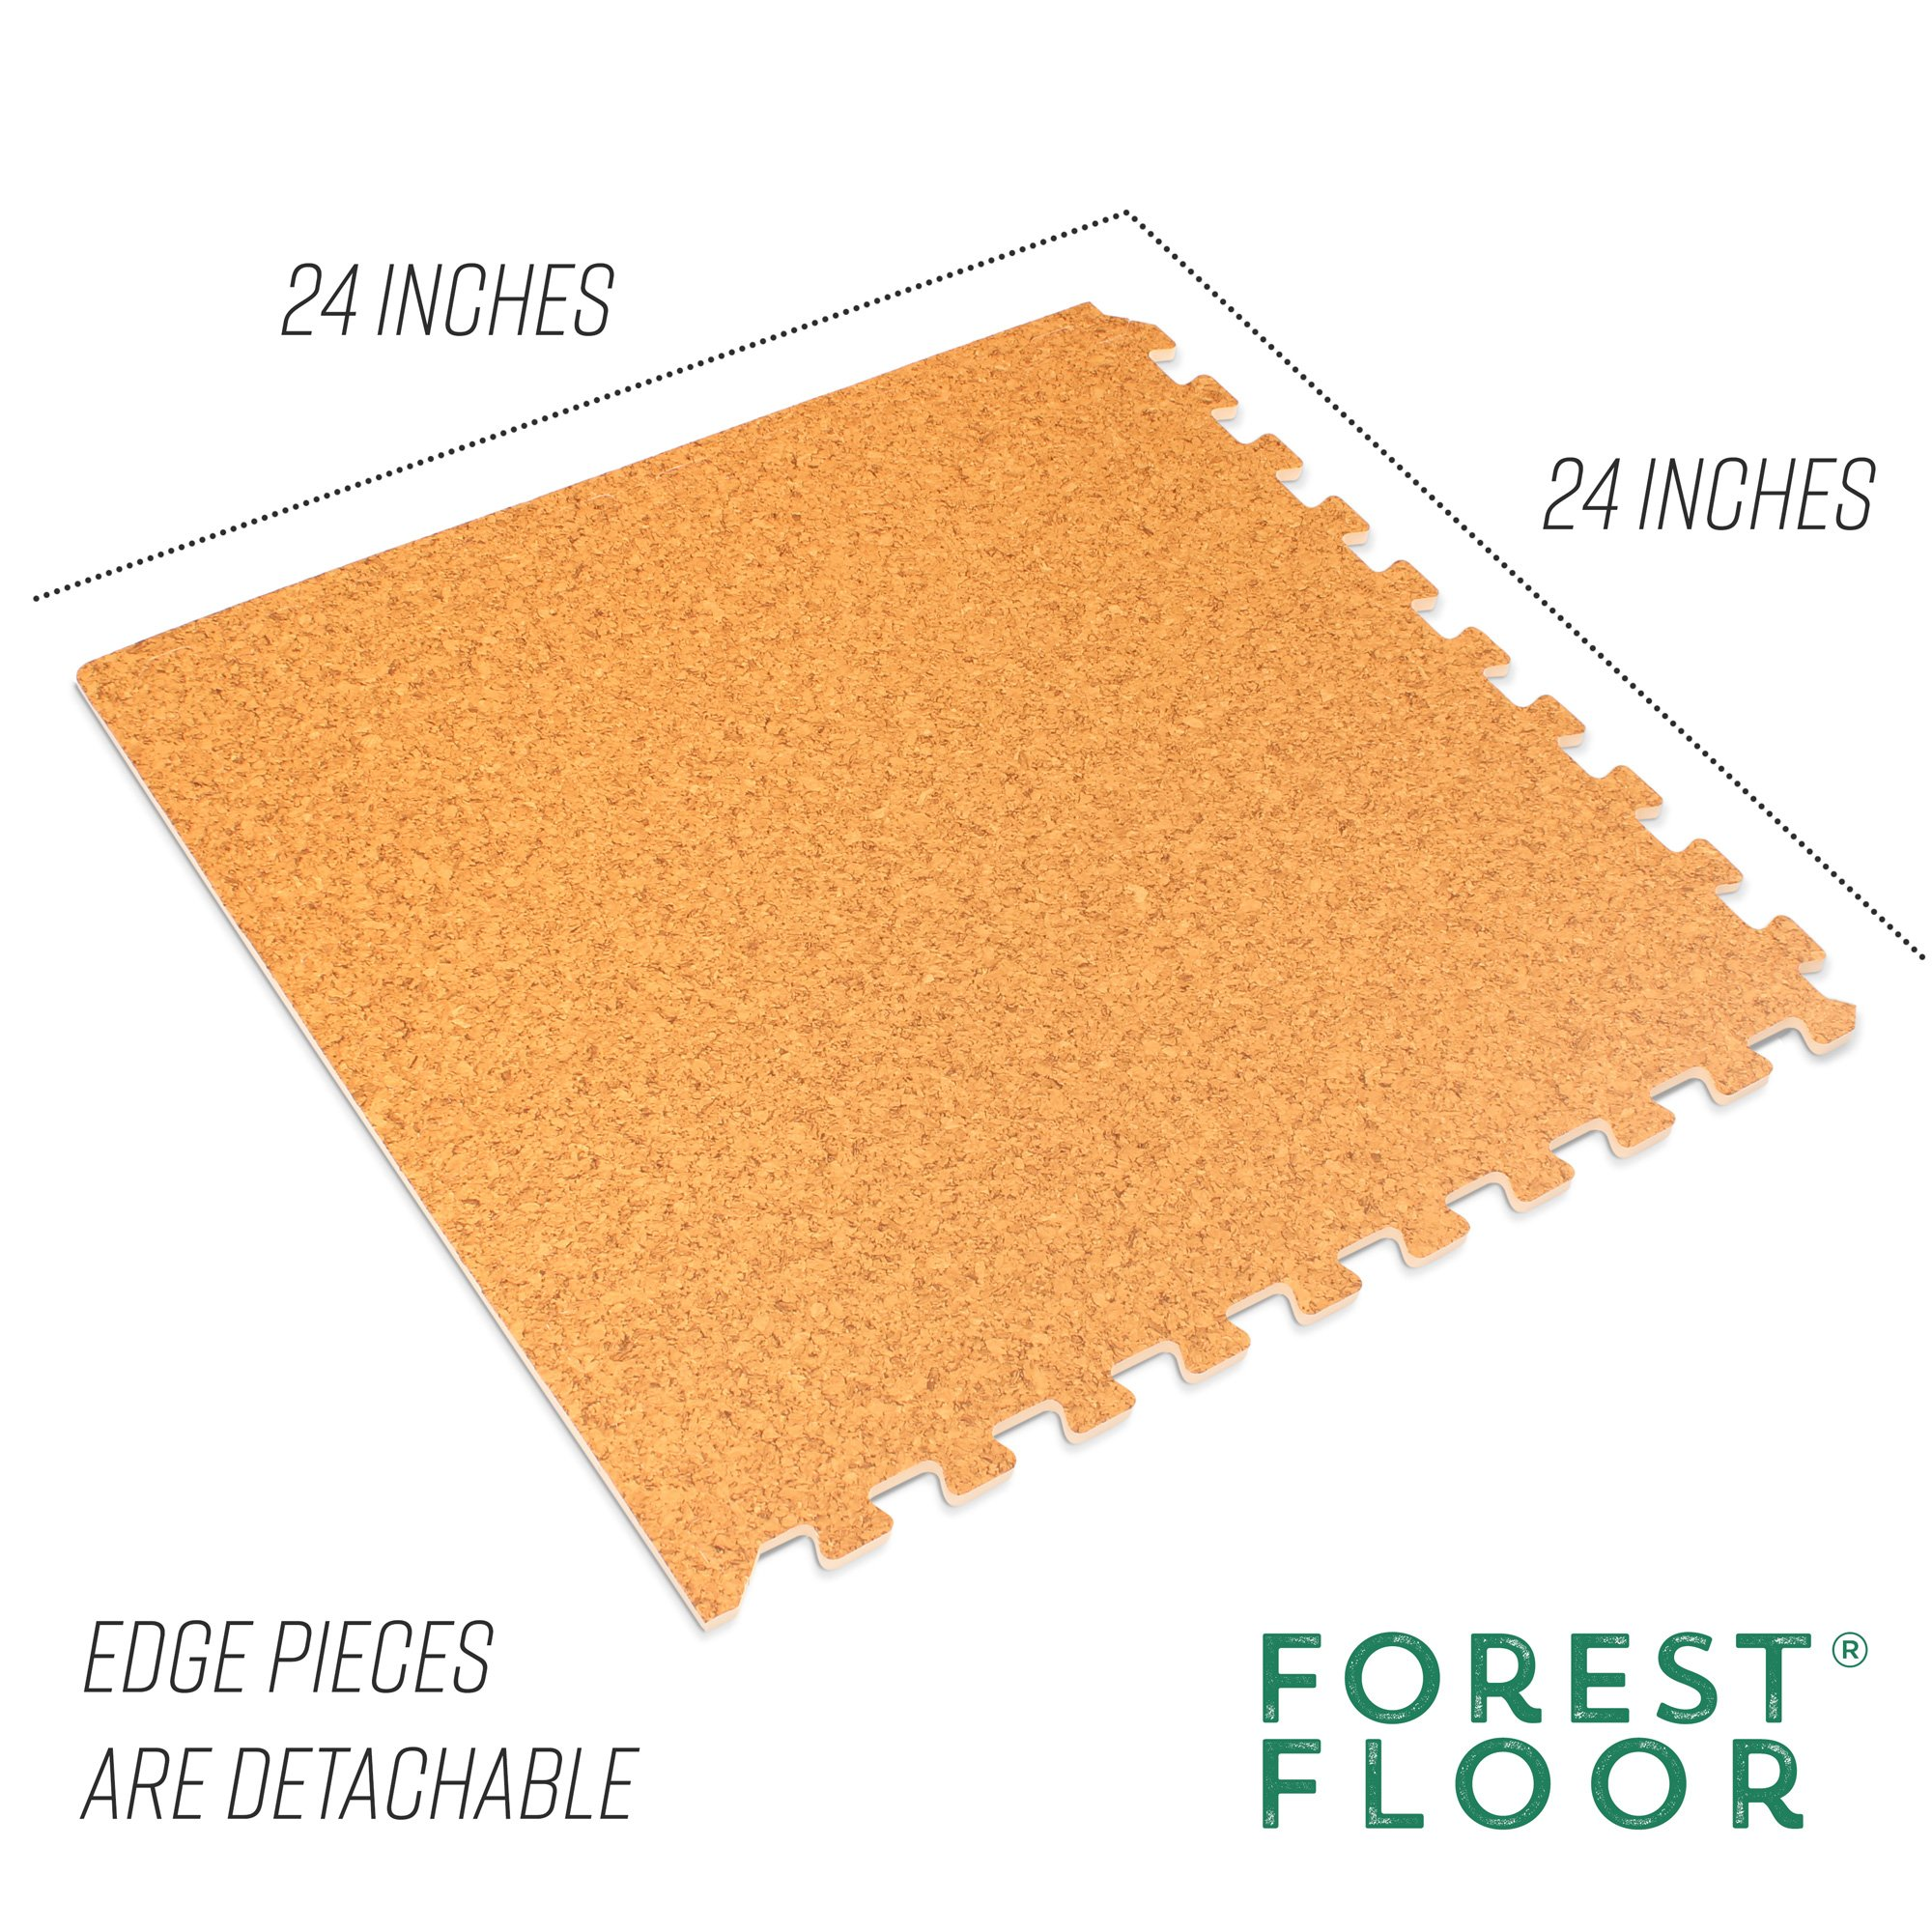 Forest Floor 3/8'' Thick Printed Wood Grain Interlocking Foam Floor Mats, 16 Sq Ft (4 Tiles), Light Cork by Forest Floor (Image #4)